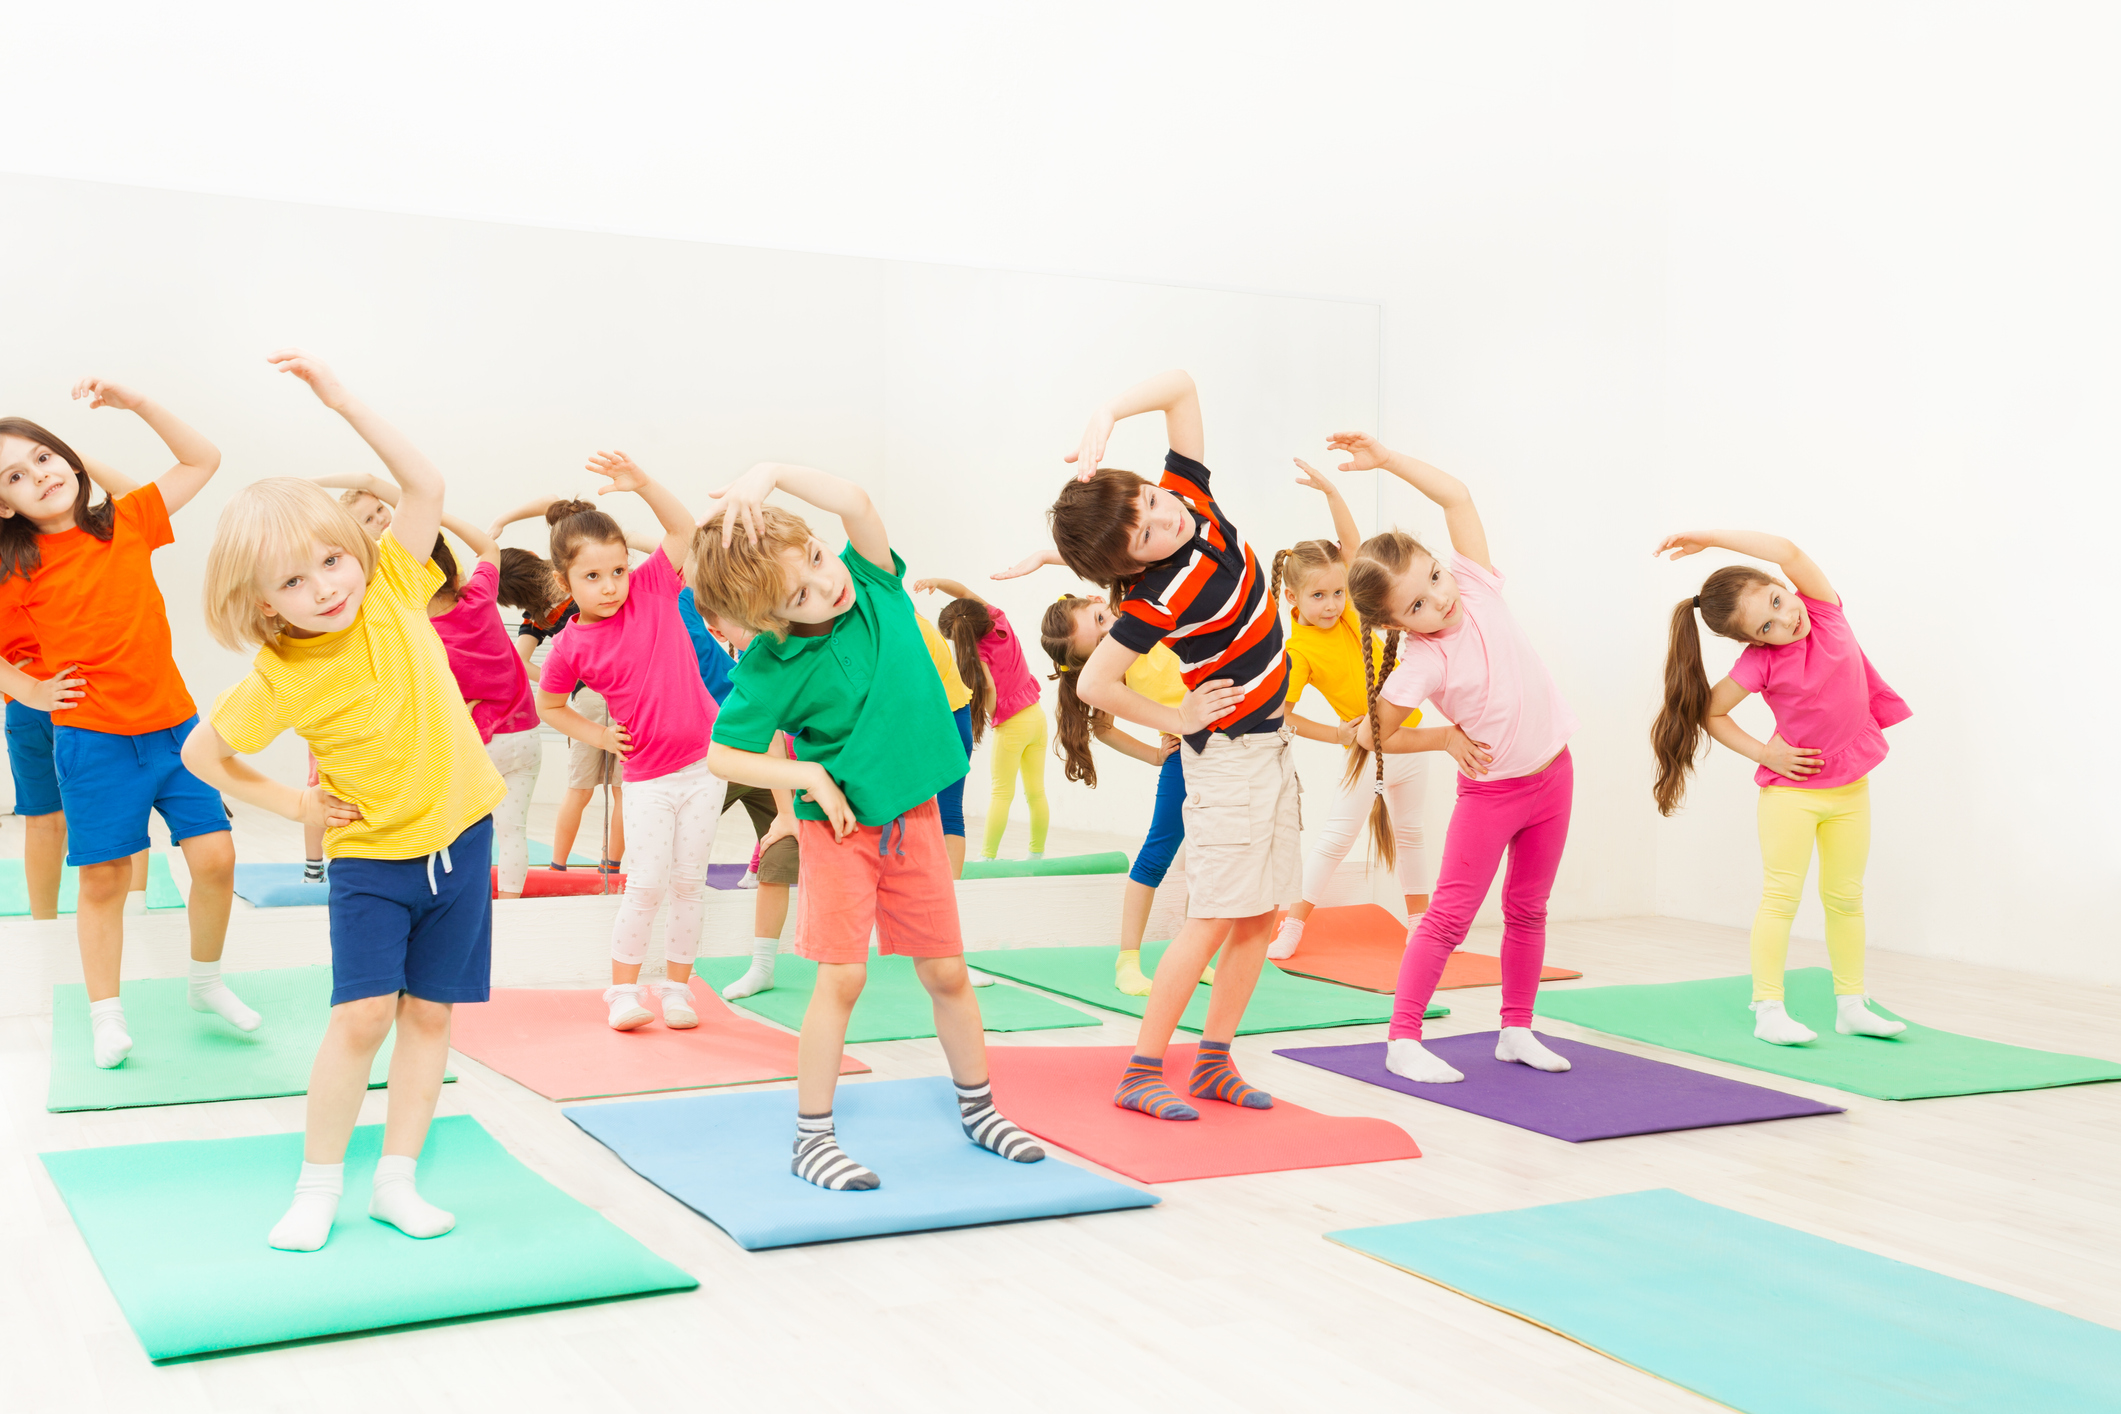 Does Exercise Make Children Smarter The Case For Gym Class